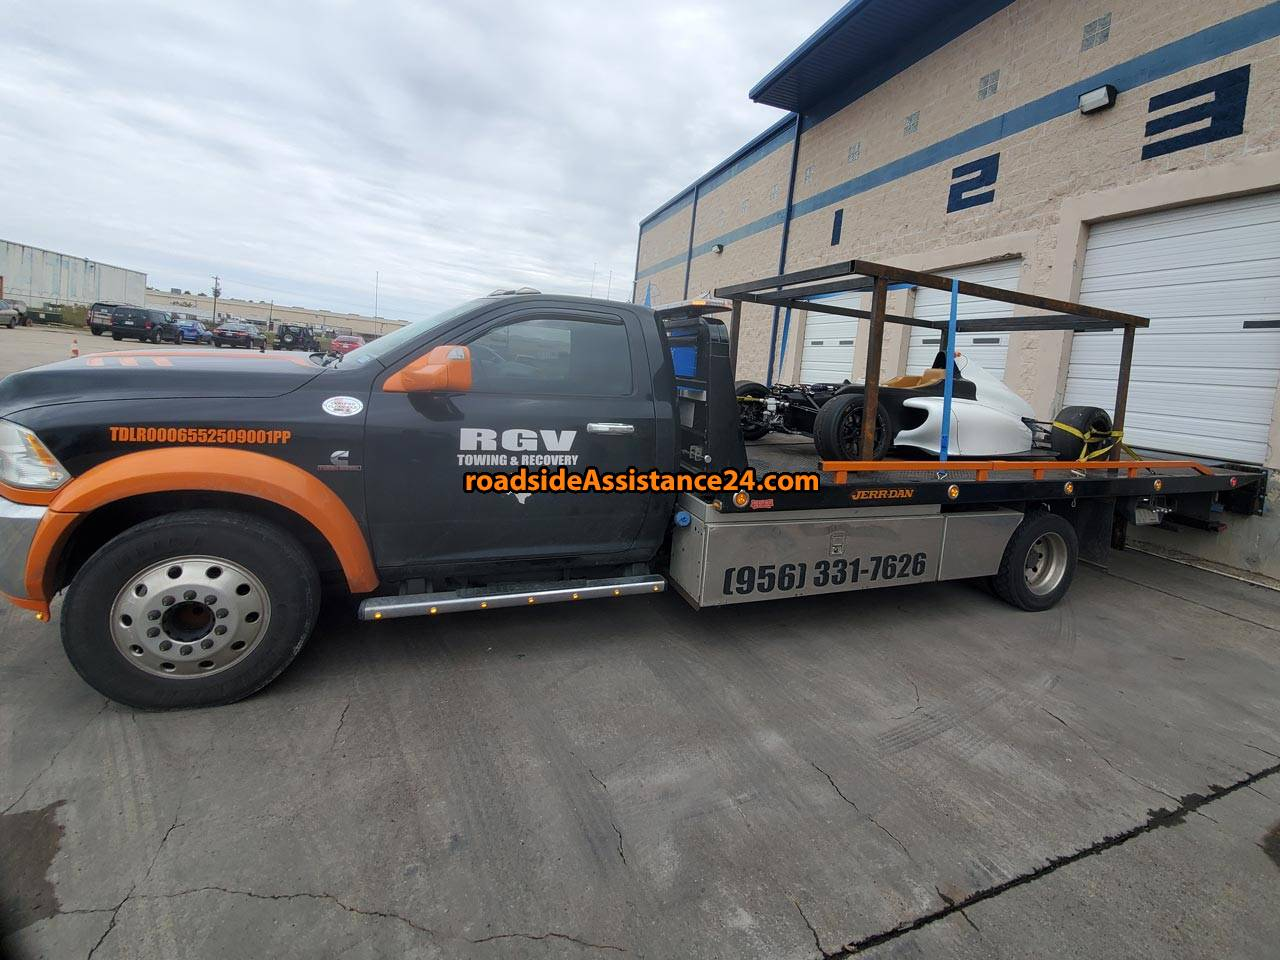 rgv towing & recovery